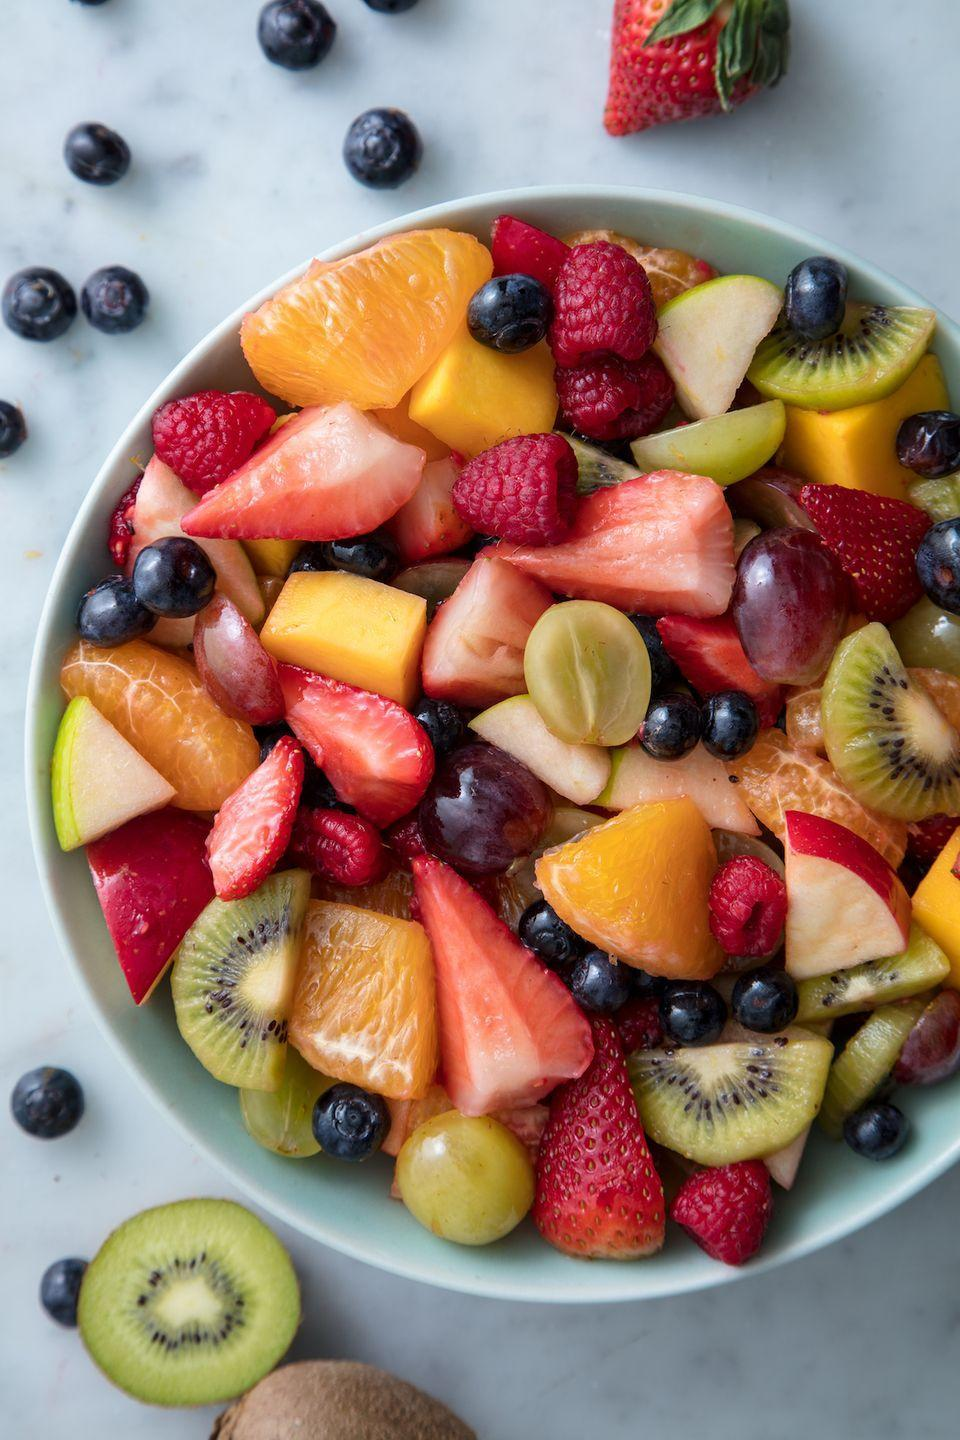 """<p>Everyone needs a good fruit salad. </p><p>Get the recipe from <a href=""""https://www.delish.com/cooking/recipe-ideas/a19609963/easy-fruit-salad-recipe/"""" rel=""""nofollow noopener"""" target=""""_blank"""" data-ylk=""""slk:Delish"""" class=""""link rapid-noclick-resp"""">Delish</a>.</p><p><a class=""""link rapid-noclick-resp"""" href=""""https://www.amazon.com/OXO-Grips-Utility-Cutting-Board/dp/B000CBOTQ8?tag=syn-yahoo-20&ascsubtag=%5Bartid%7C1782.g.4110%5Bsrc%7Cyahoo-us"""" rel=""""nofollow noopener"""" target=""""_blank"""" data-ylk=""""slk:BUY NOW"""">BUY NOW</a> OXO Cutting Board, 6;15<br></p>"""